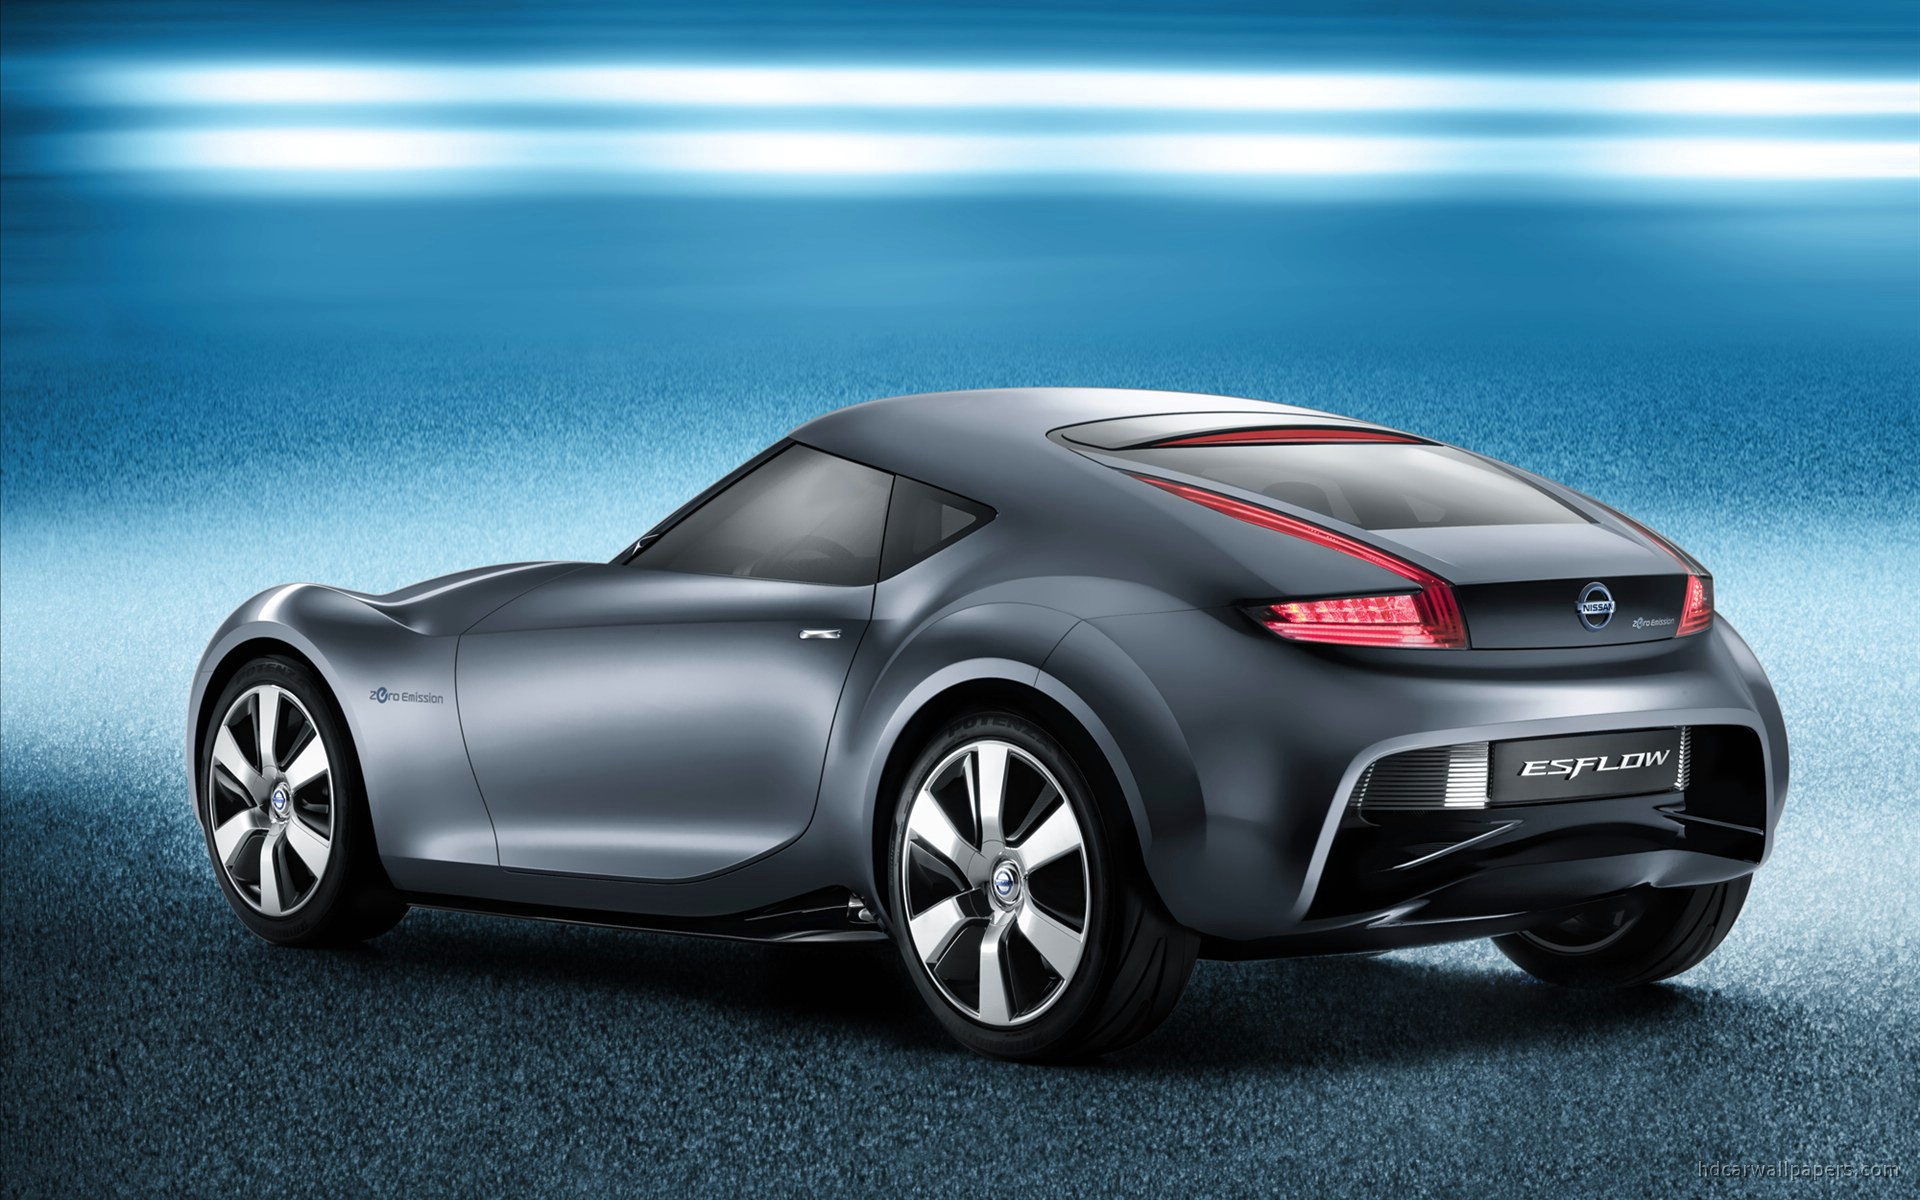 New Nissan Sports Car - Sports Cars